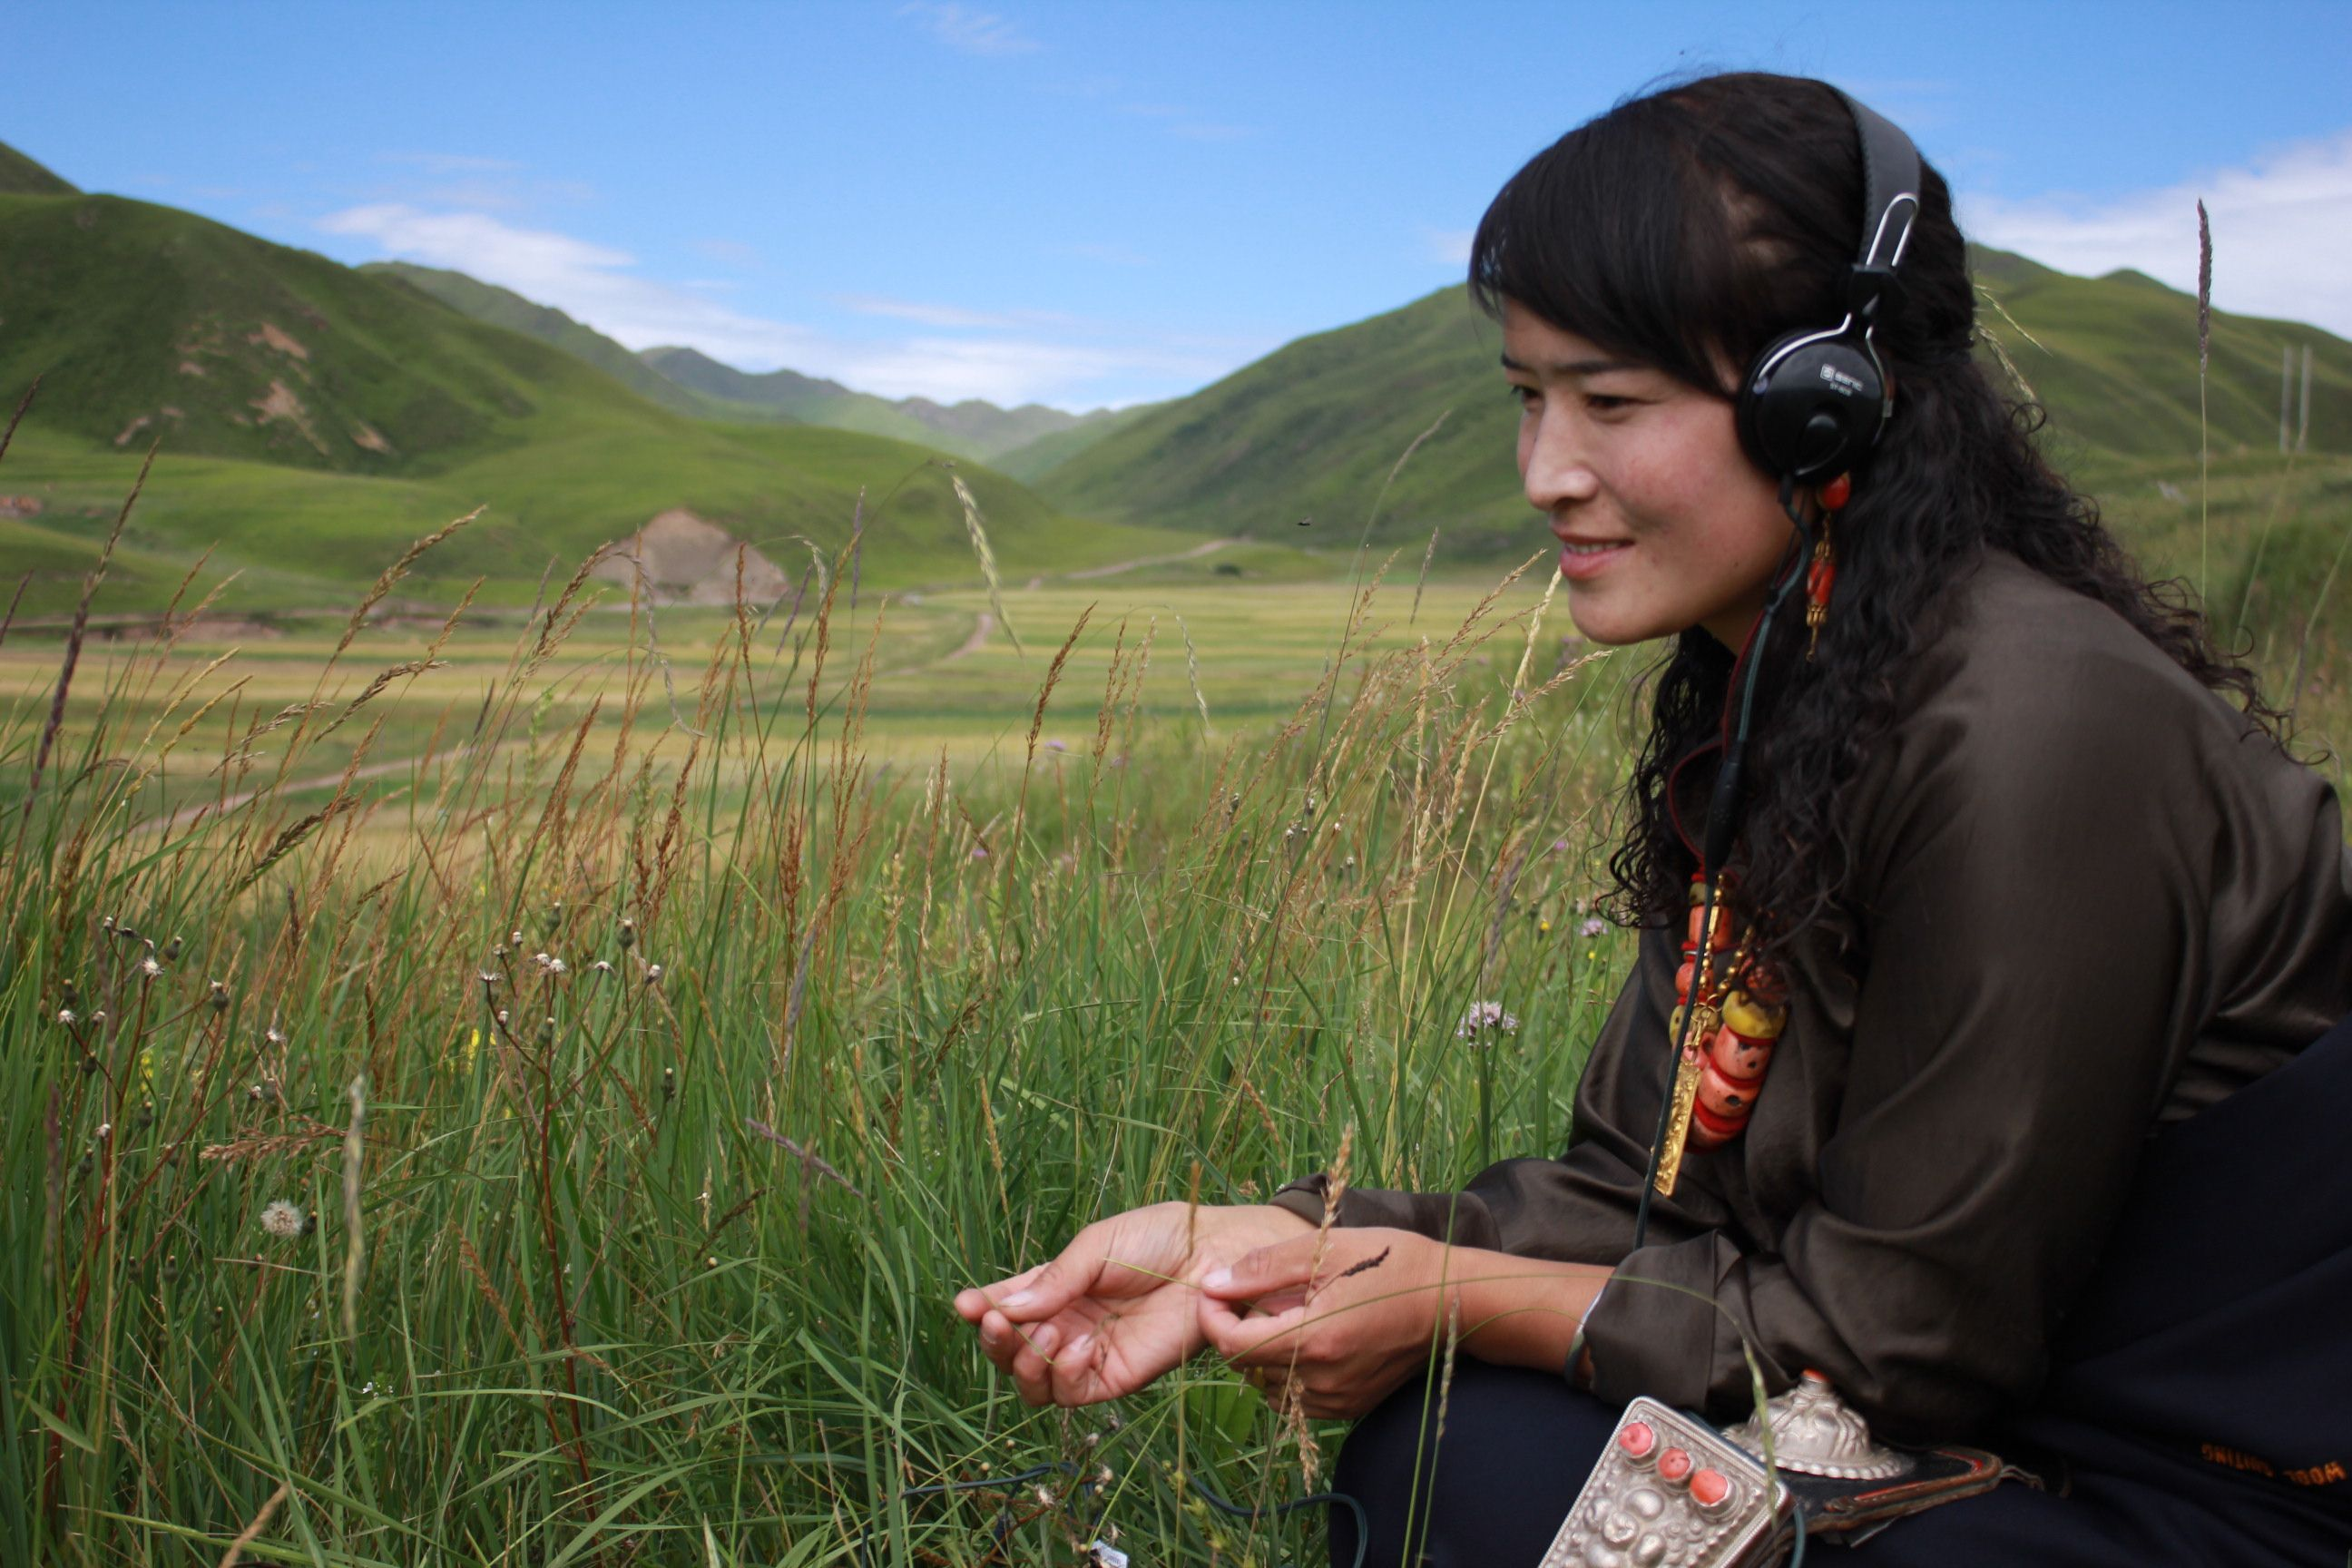 Archiving a Collection of Oral Traditions from the Tibetan Plateau